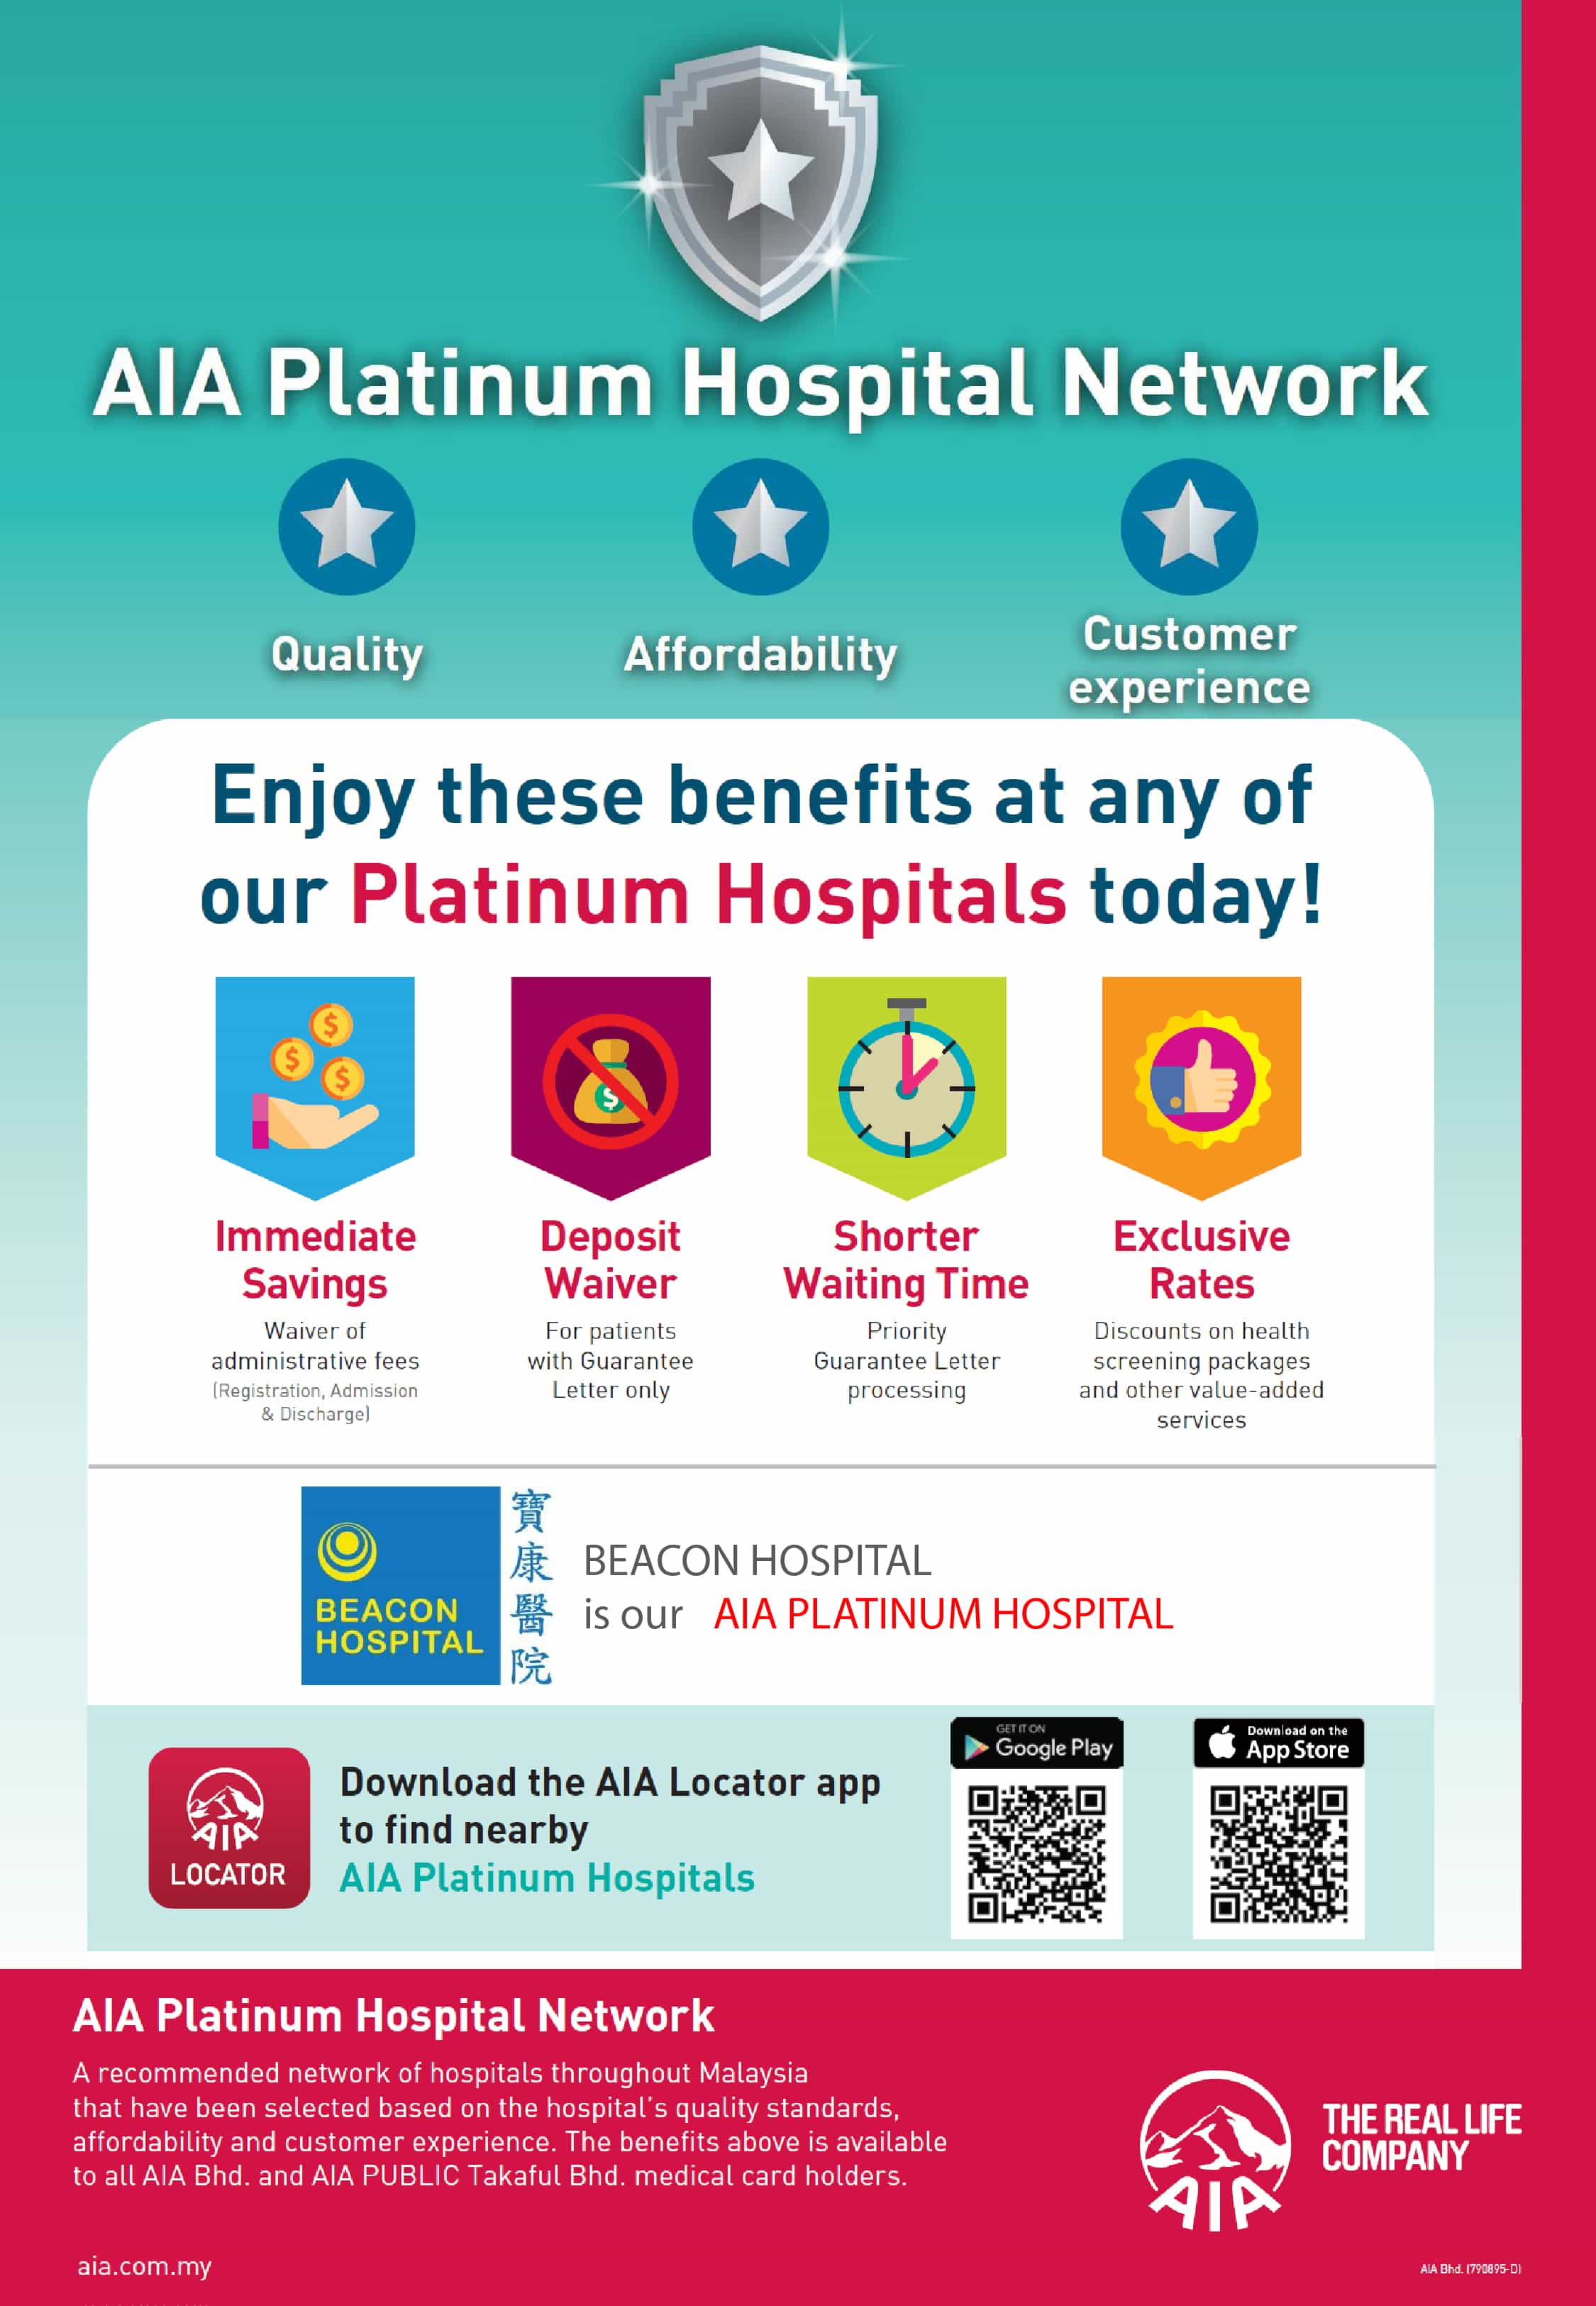 G7042000 certificate of substantial completion daily planning template test template word end aia platinum hospital poster beacon g8102001 transmittal letter aia bookstorehtml g7042000 certificate of substantial completion yelopaper Choice Image